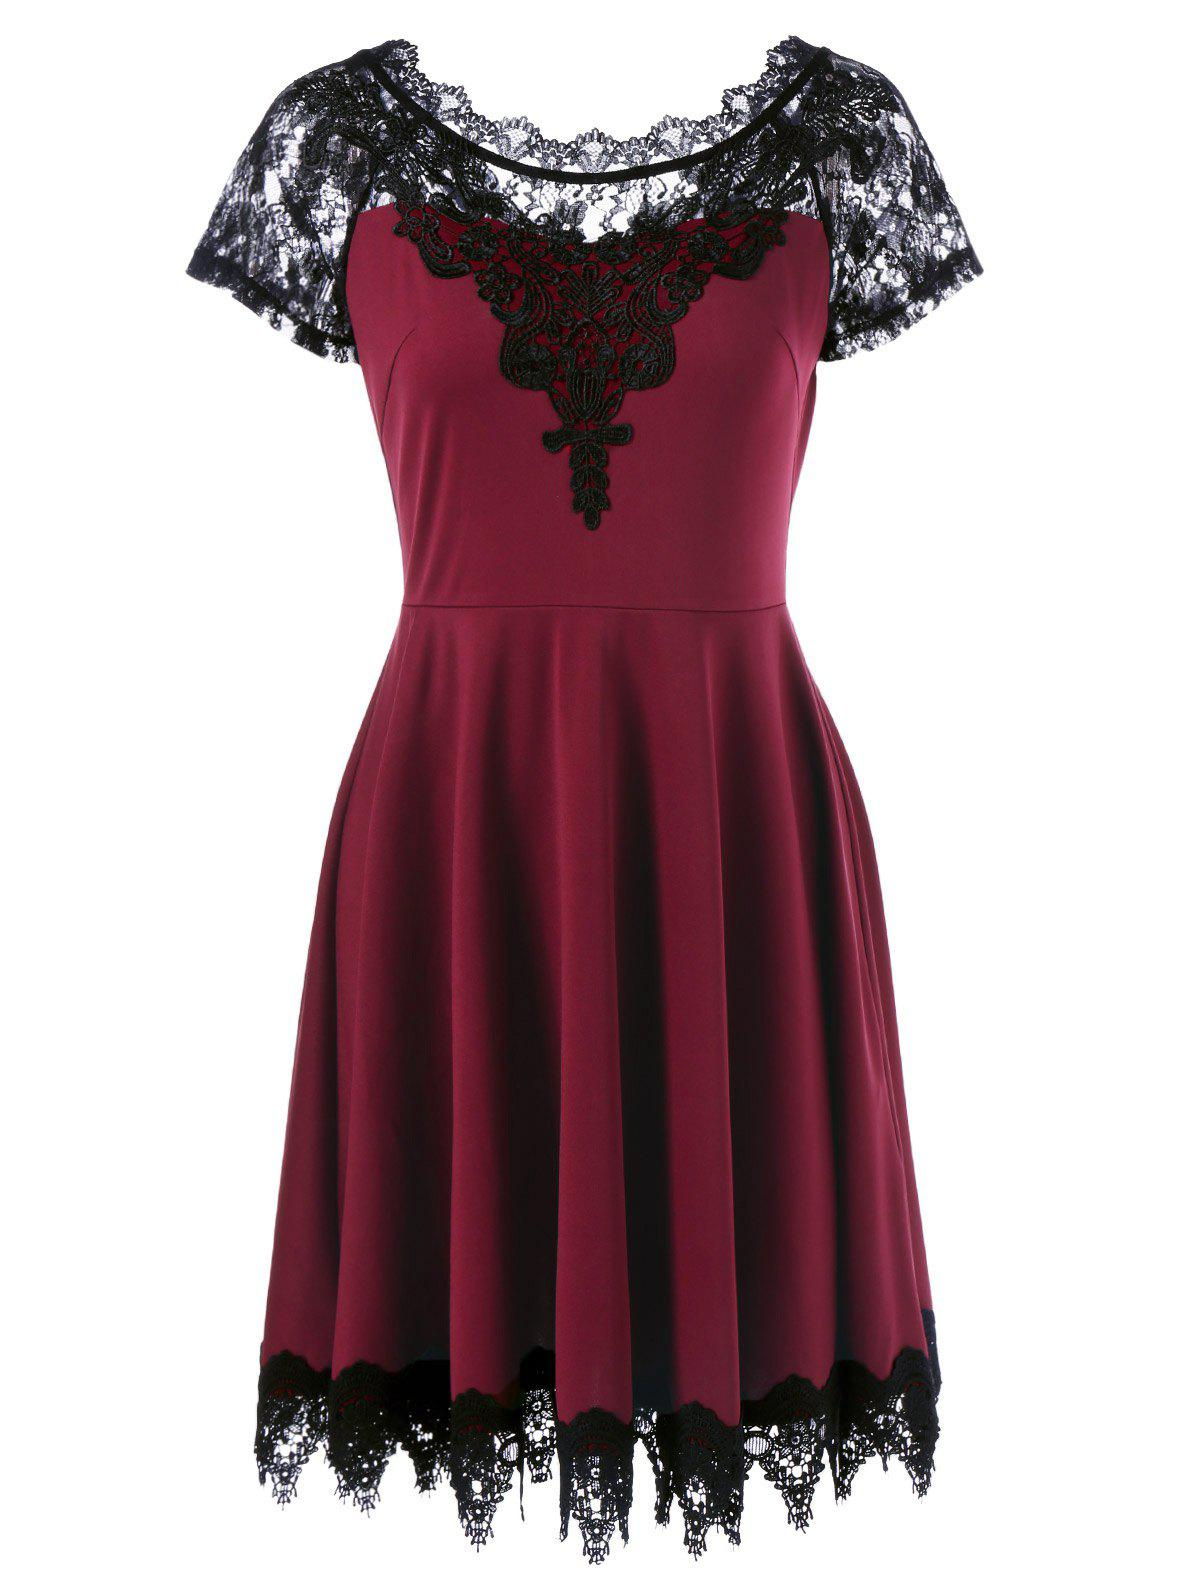 Lace Insert Skater Dress - WINE RED XL